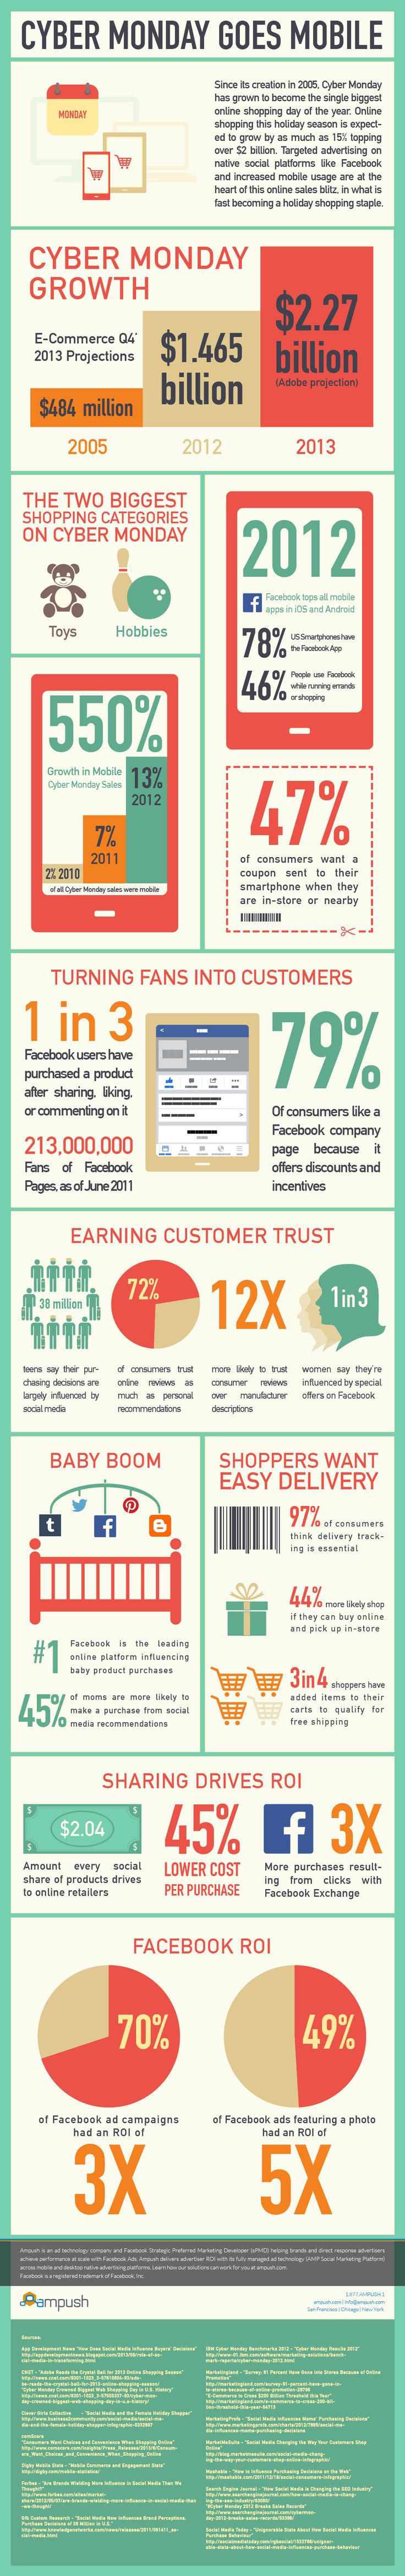 77a3aacef79d78e4ad8d335d3807135f--ecommerce-marketing-mobile-marketing Digital Marketing : How Cyber Monday has become a great #mobile event  #CyberMonday #infographic